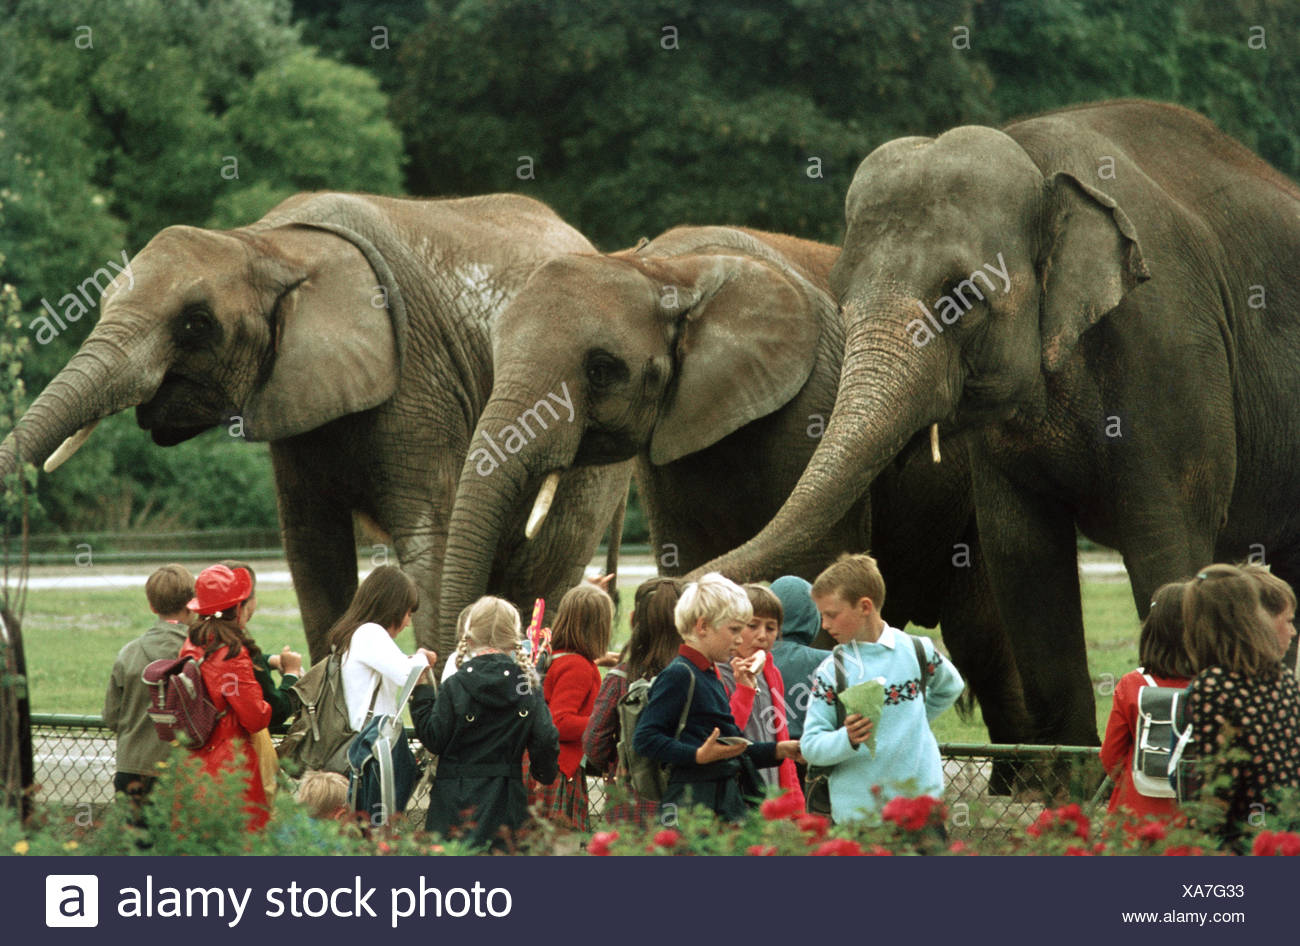 Asiatic elephant, Asian elephant (Elephas maximus), school class at the zoo in front of an open-air enclosure with three animals - Stock Image